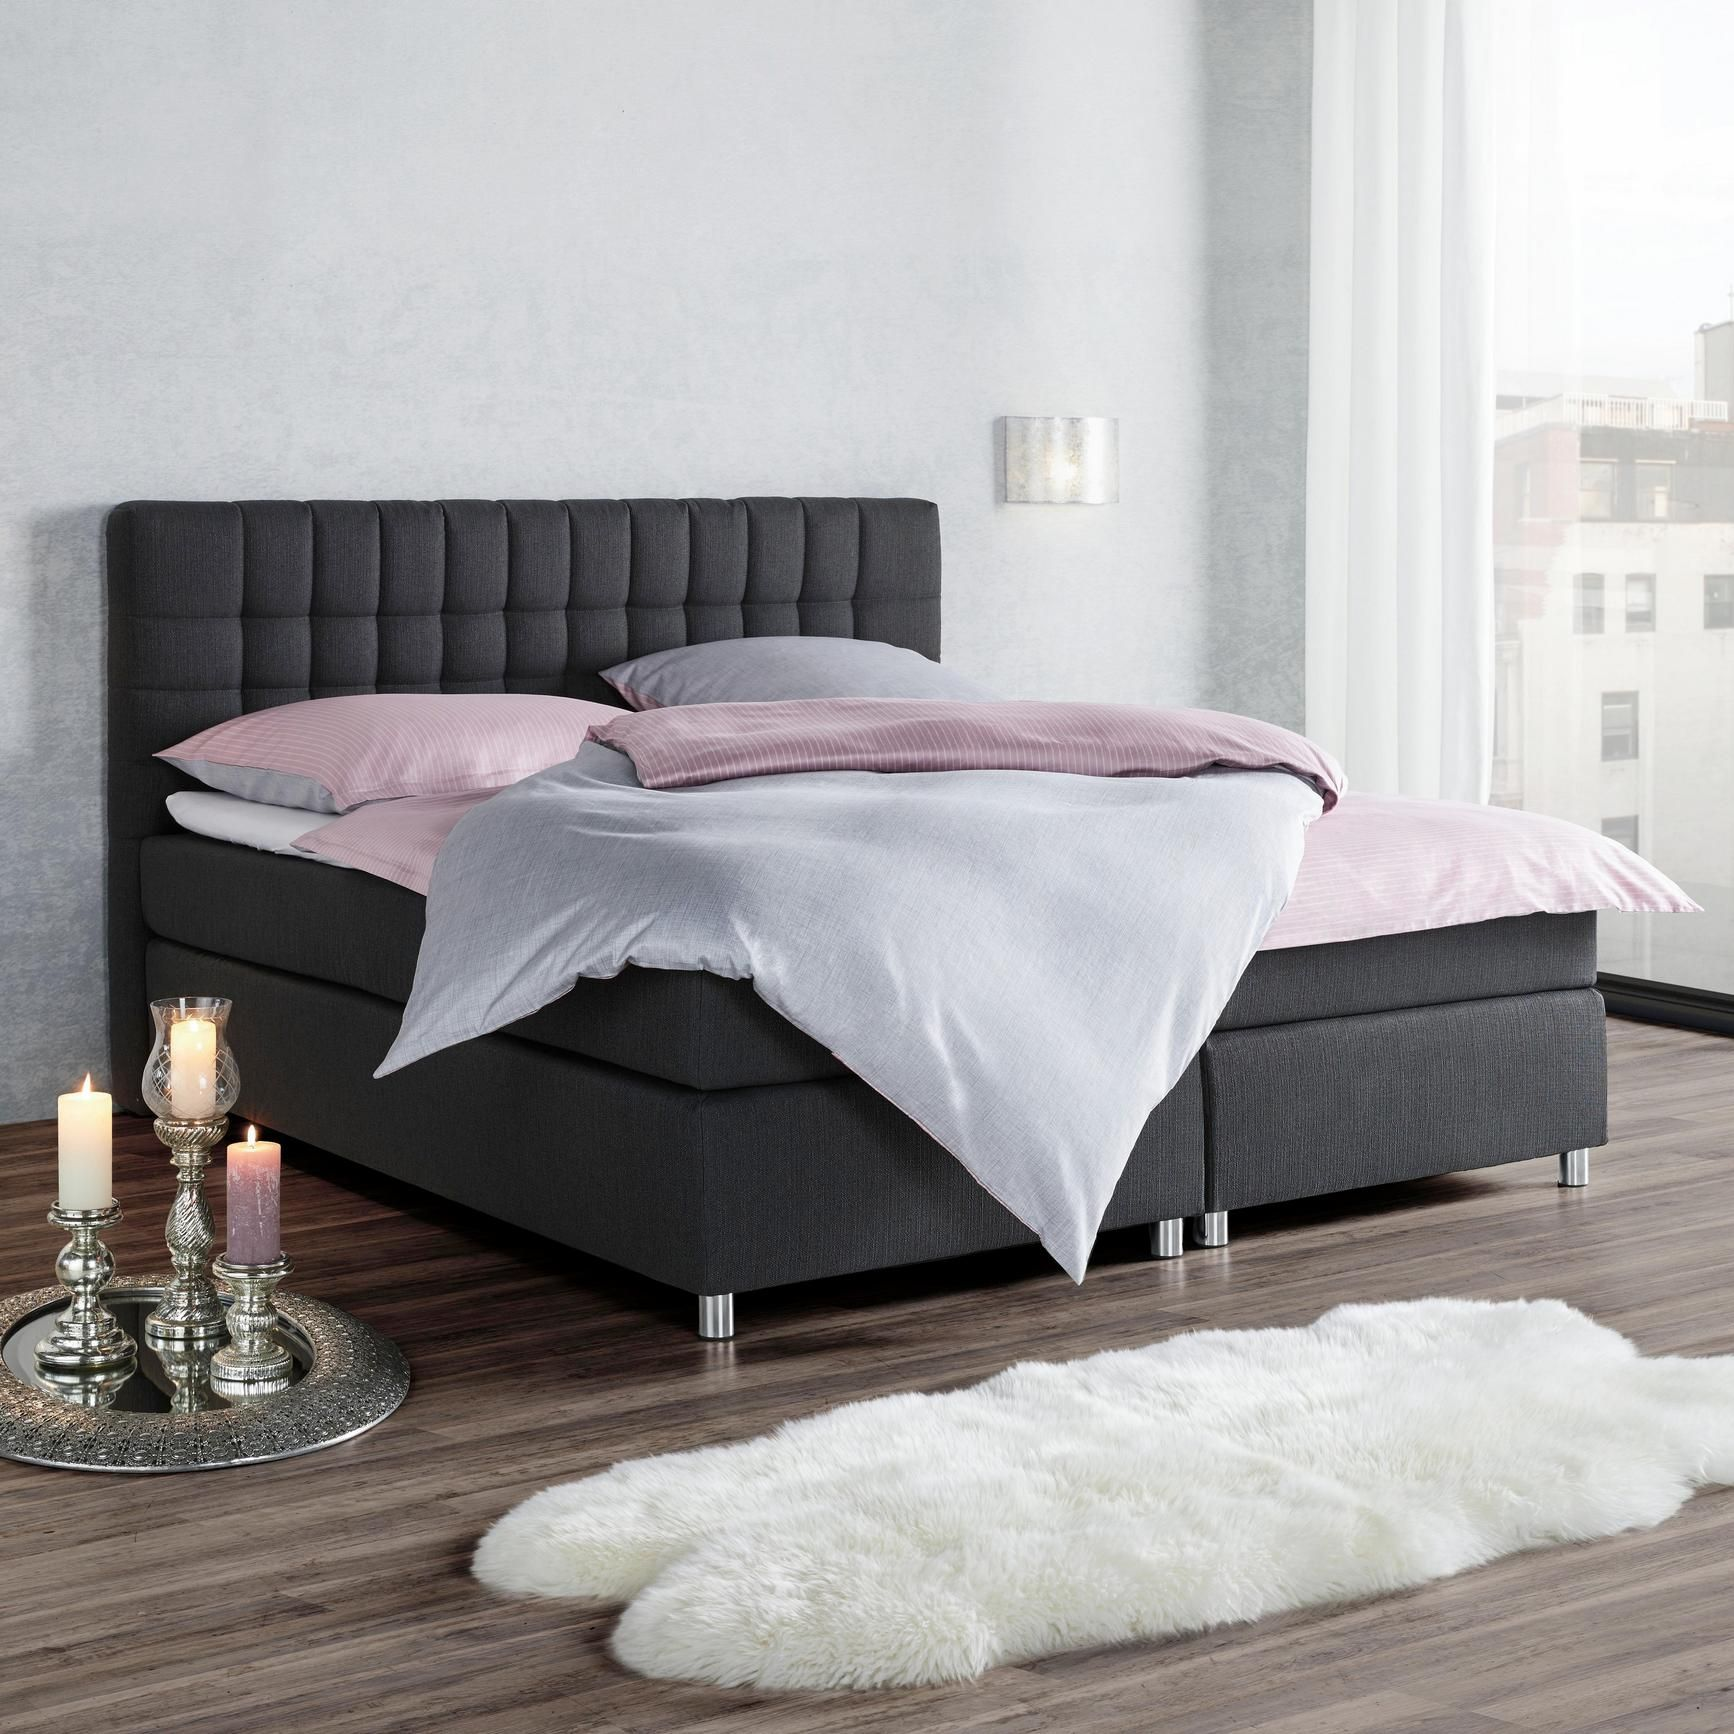 Lampe Schlafzimmer Mömax Boxspringbett Tom Ca 180x200cm Inkl Topper In 2019 Home Living